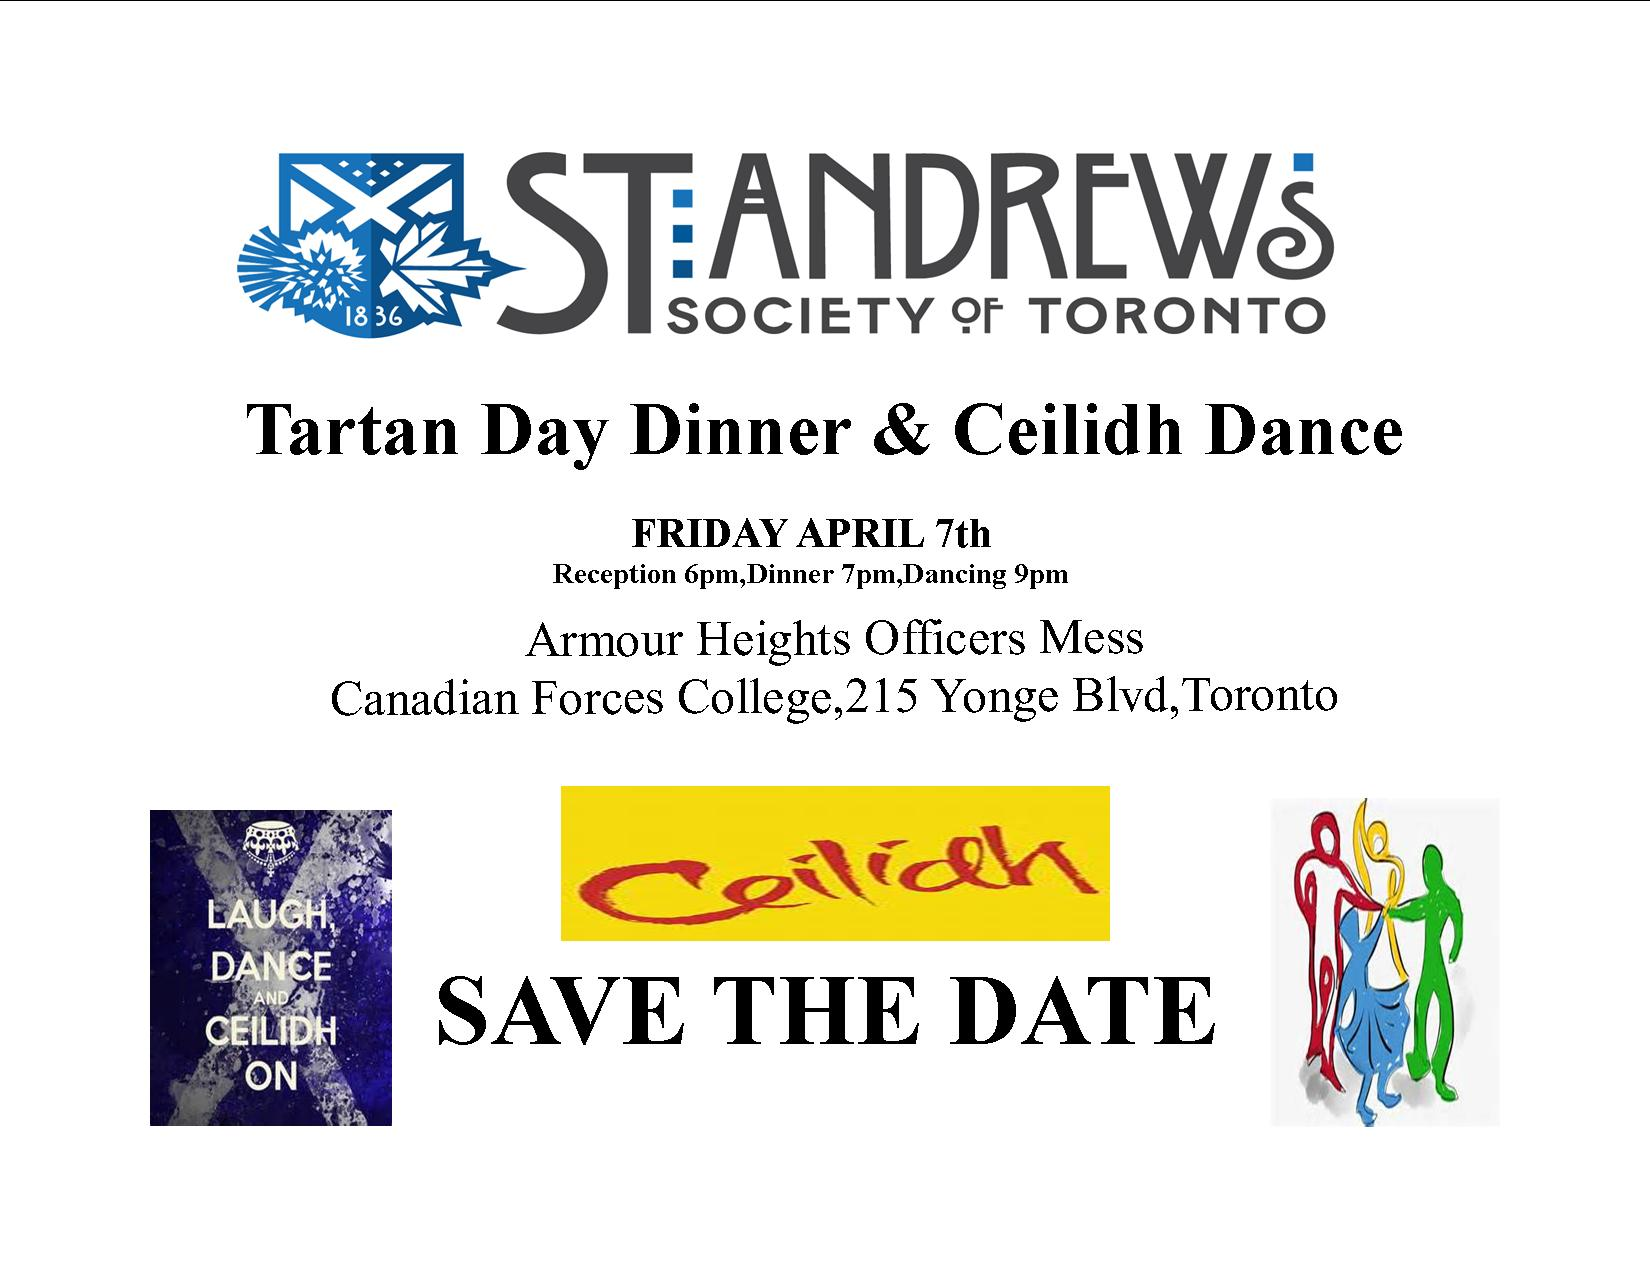 tartan-day-2017-save-the-date